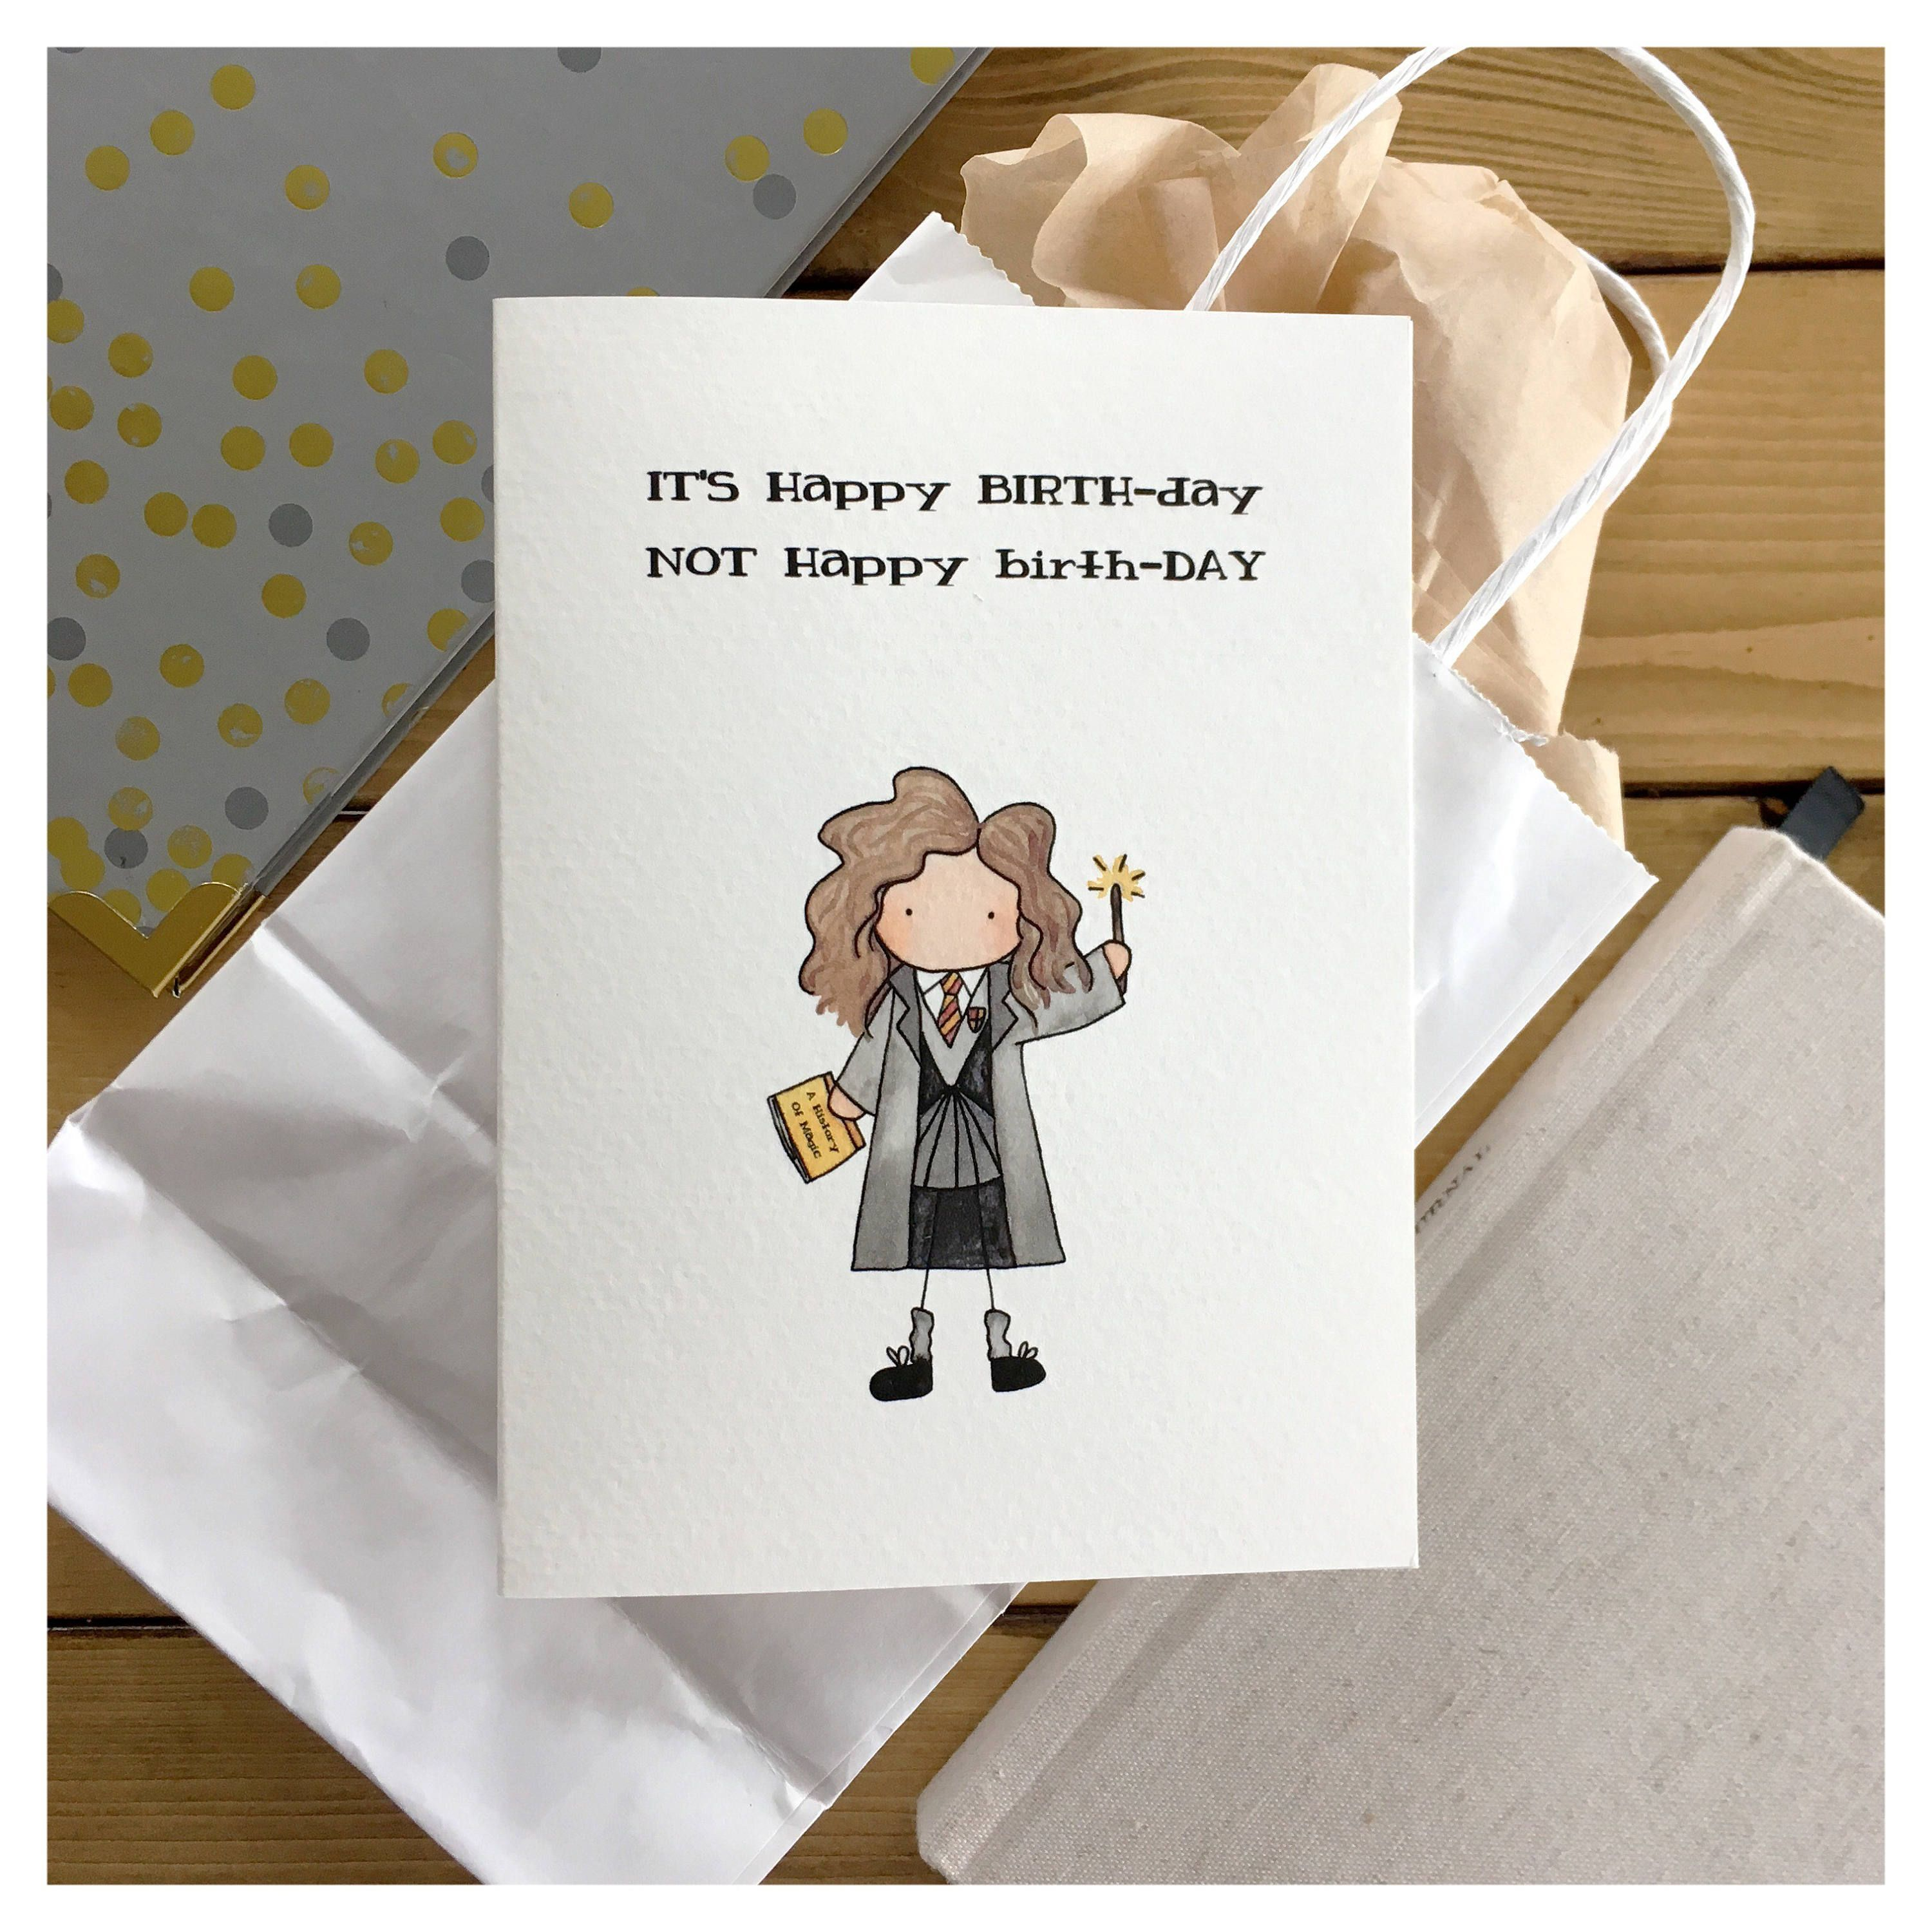 Hermione Birthday Card // Hermione, Harry Potter Birthday Card, Harry Potter Card, Harry Potter